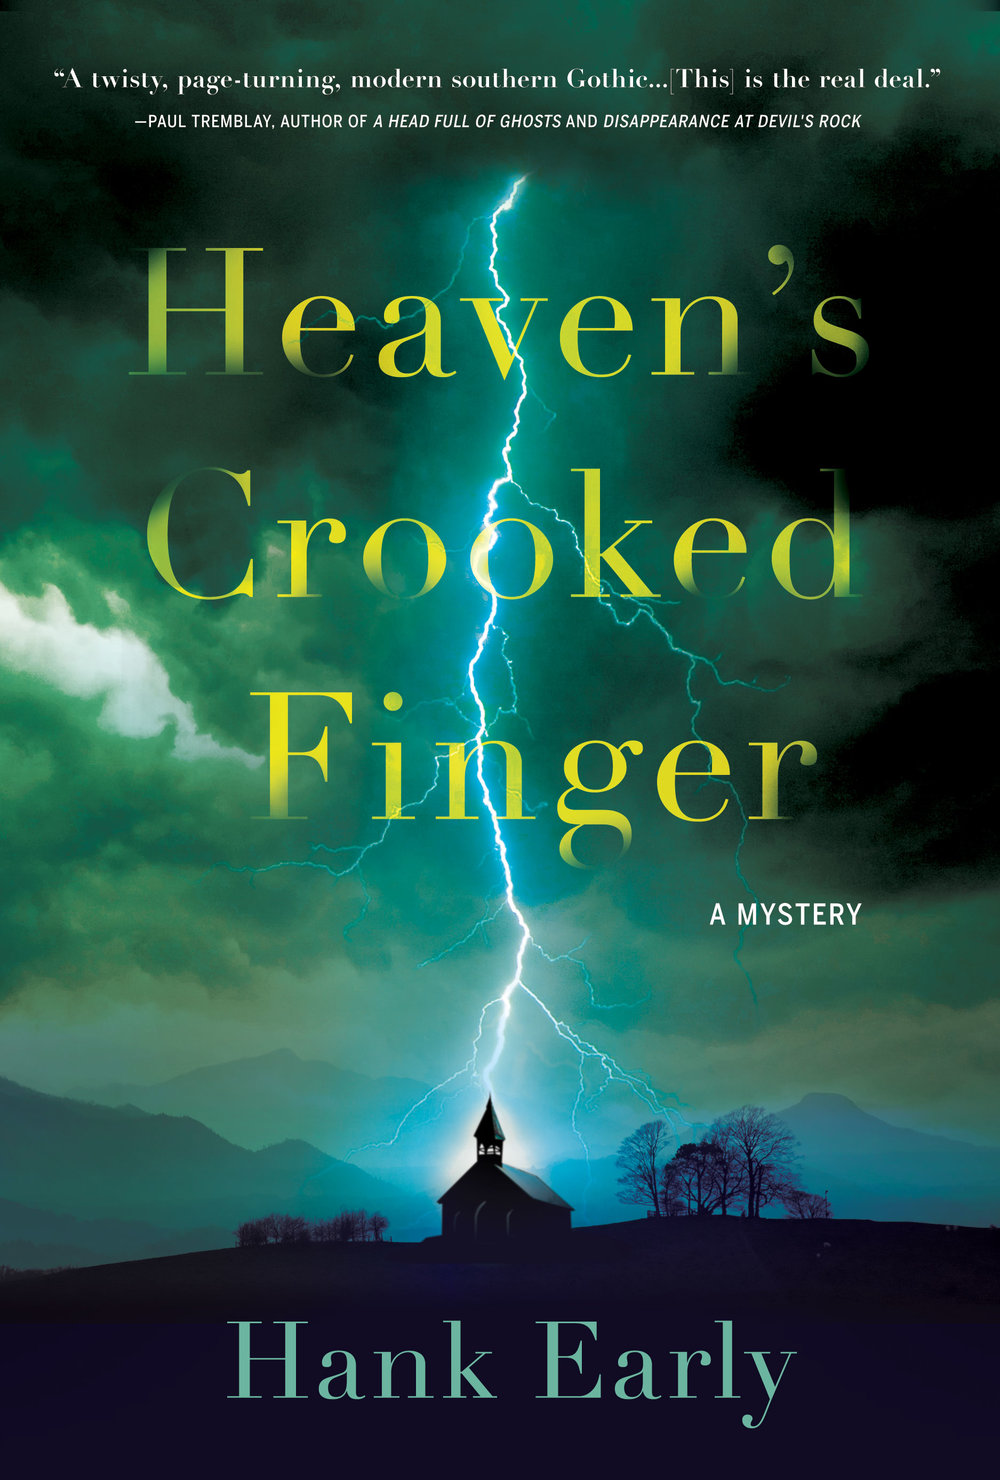 heaven's crooked finger, hank early, mystery, book